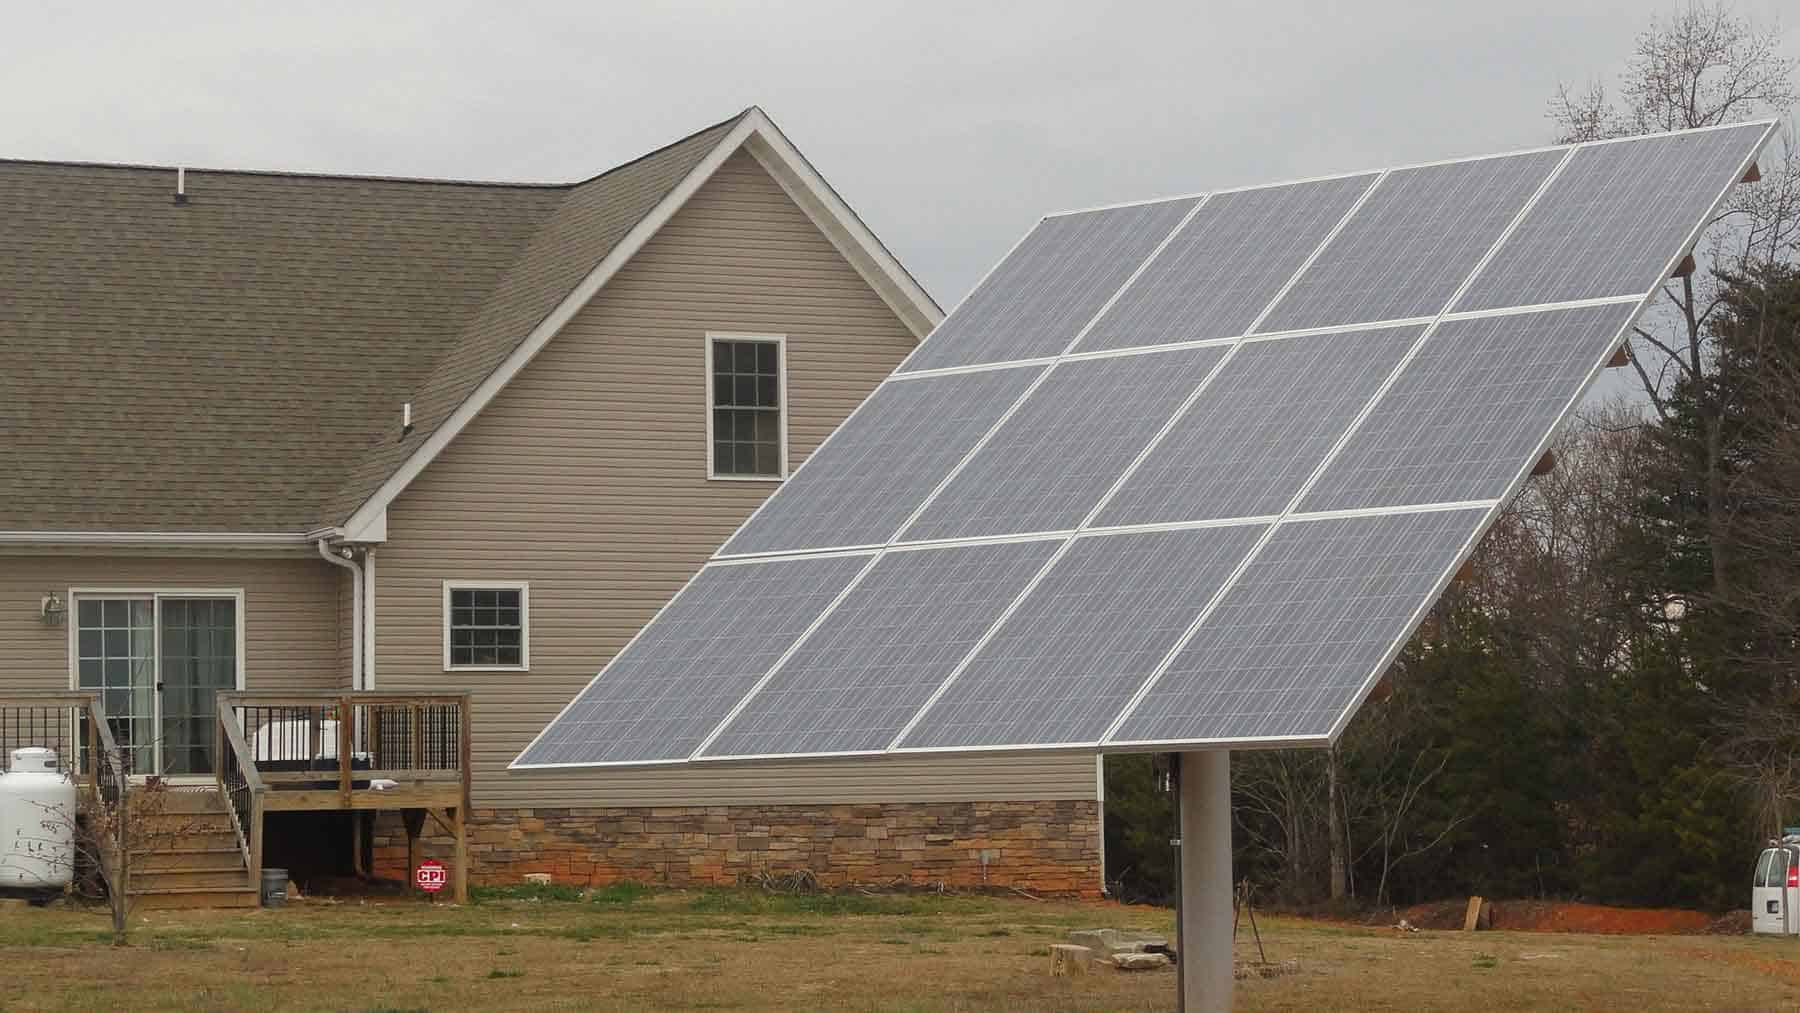 Considering getting solar panels? Here are the right questions to ask.